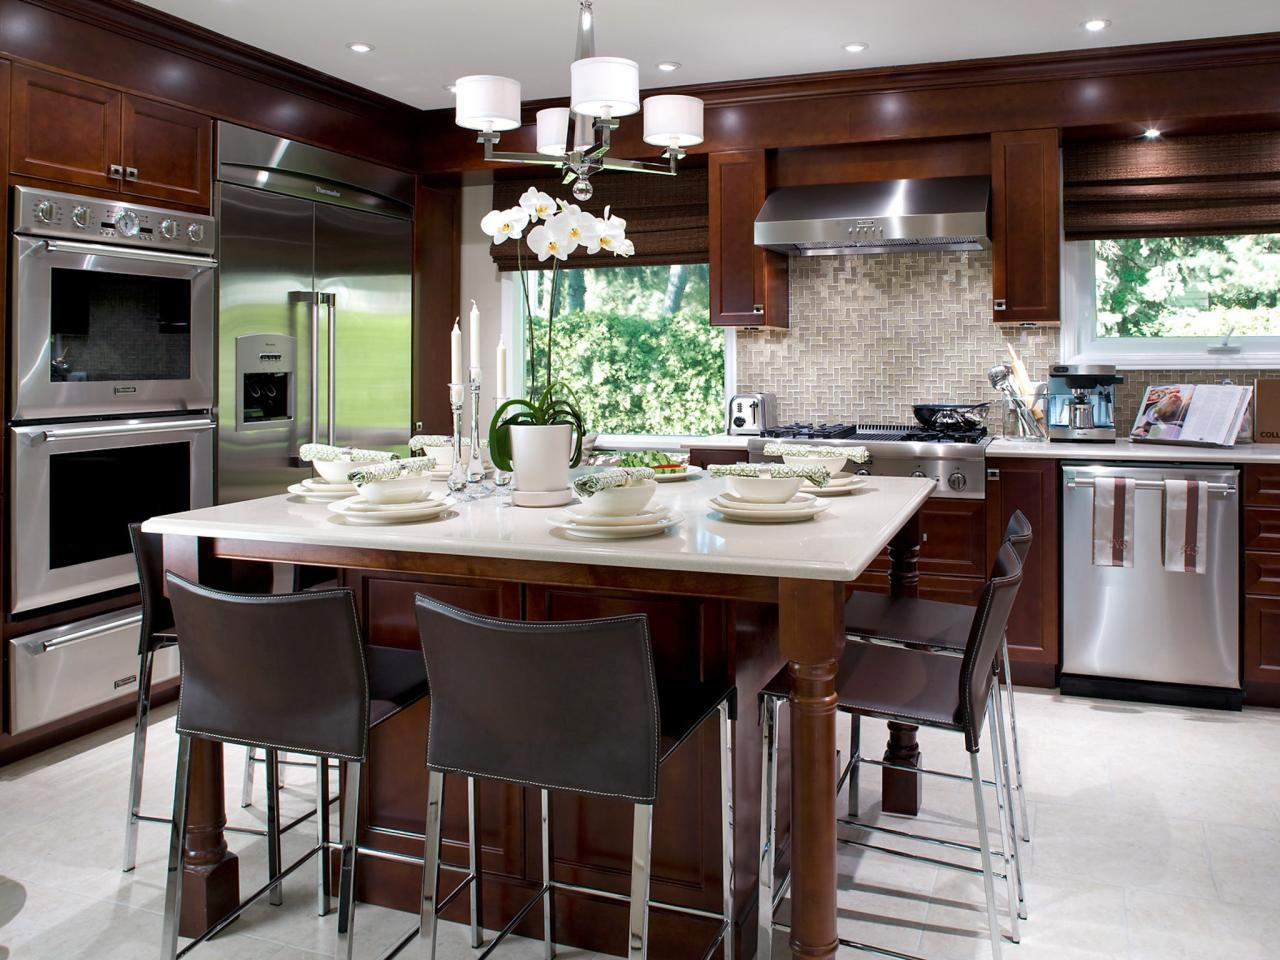 Kitchens Styles And Designs European Kitchen Design Pictures Ideas & Tips From Hgtv  Hgtv